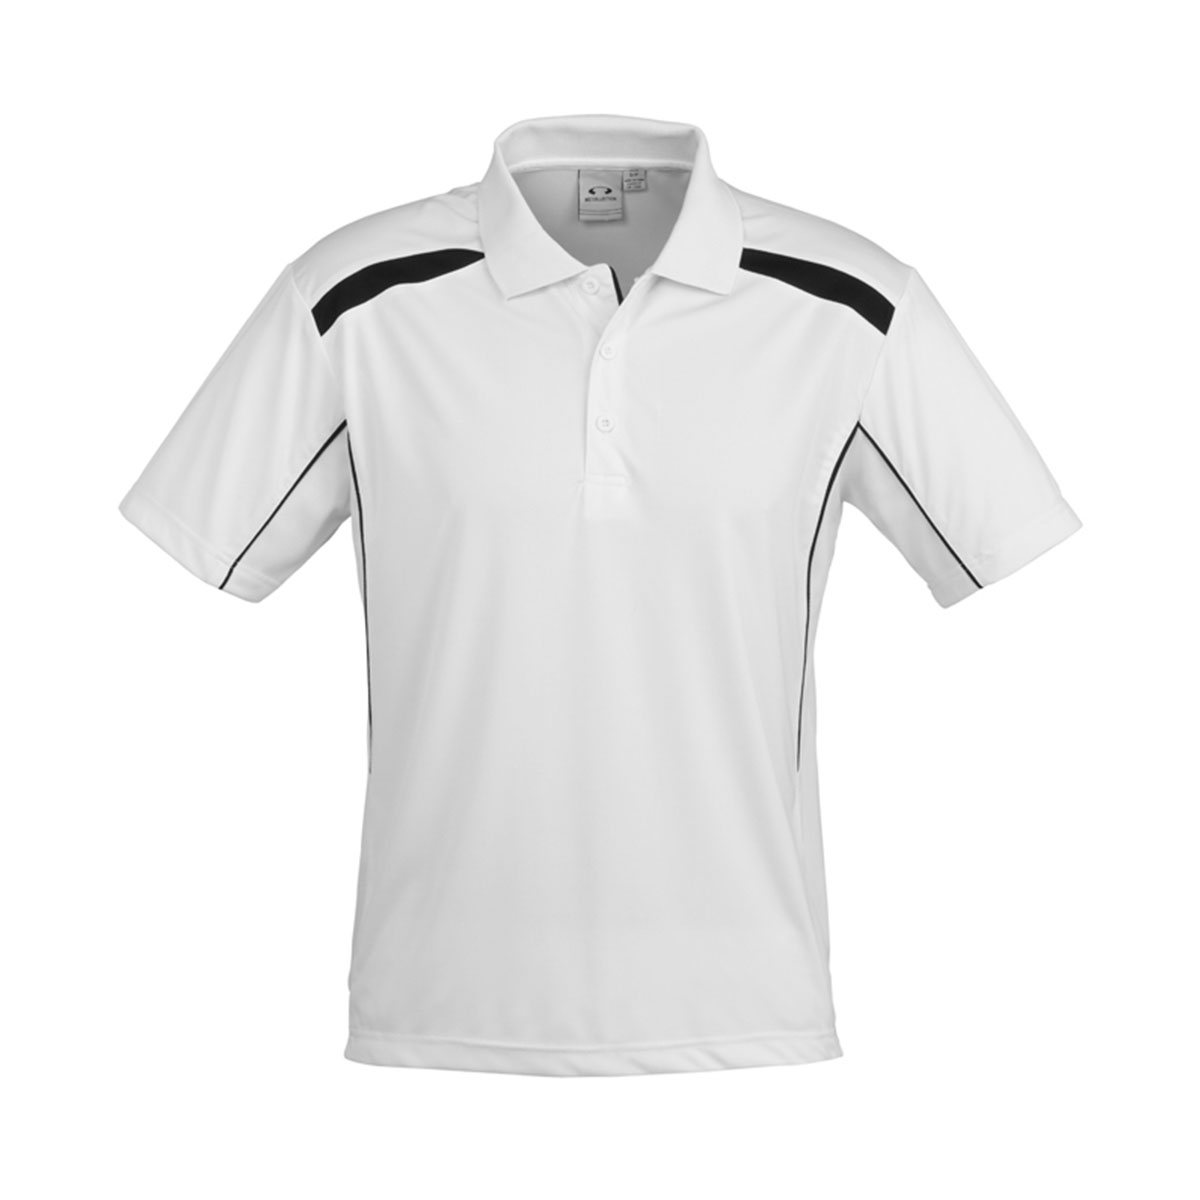 Mens United Short Sleeve Polo-White / Black